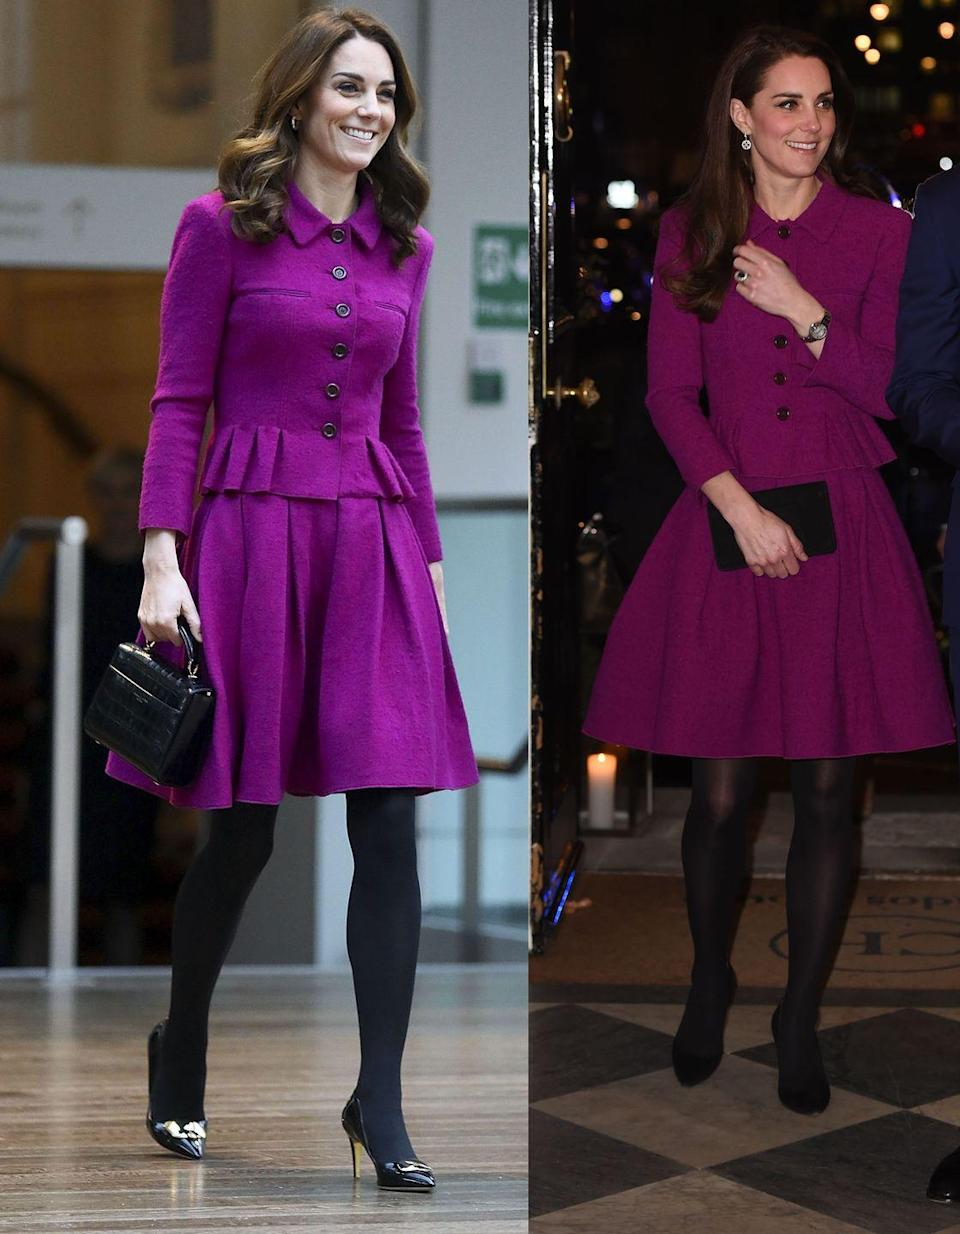 "<p>The Duchess of Cambridge rewore a fuchsia Oscar de la Renta skirt suit to <a href=""https://www.townandcountrymag.com/style/fashion-trends/a25906173/kate-middleton-royal-opera-house-oscar-de-la-renta-suit-photos/"" rel=""nofollow noopener"" target=""_blank"" data-ylk=""slk:visit the Royal Opera House"" class=""link rapid-noclick-resp"">visit the Royal Opera House </a>on Wednesday, January 16. She originally wore the look to a Guild of Health Writers conference with Prince William on February 6, 2017. </p>"